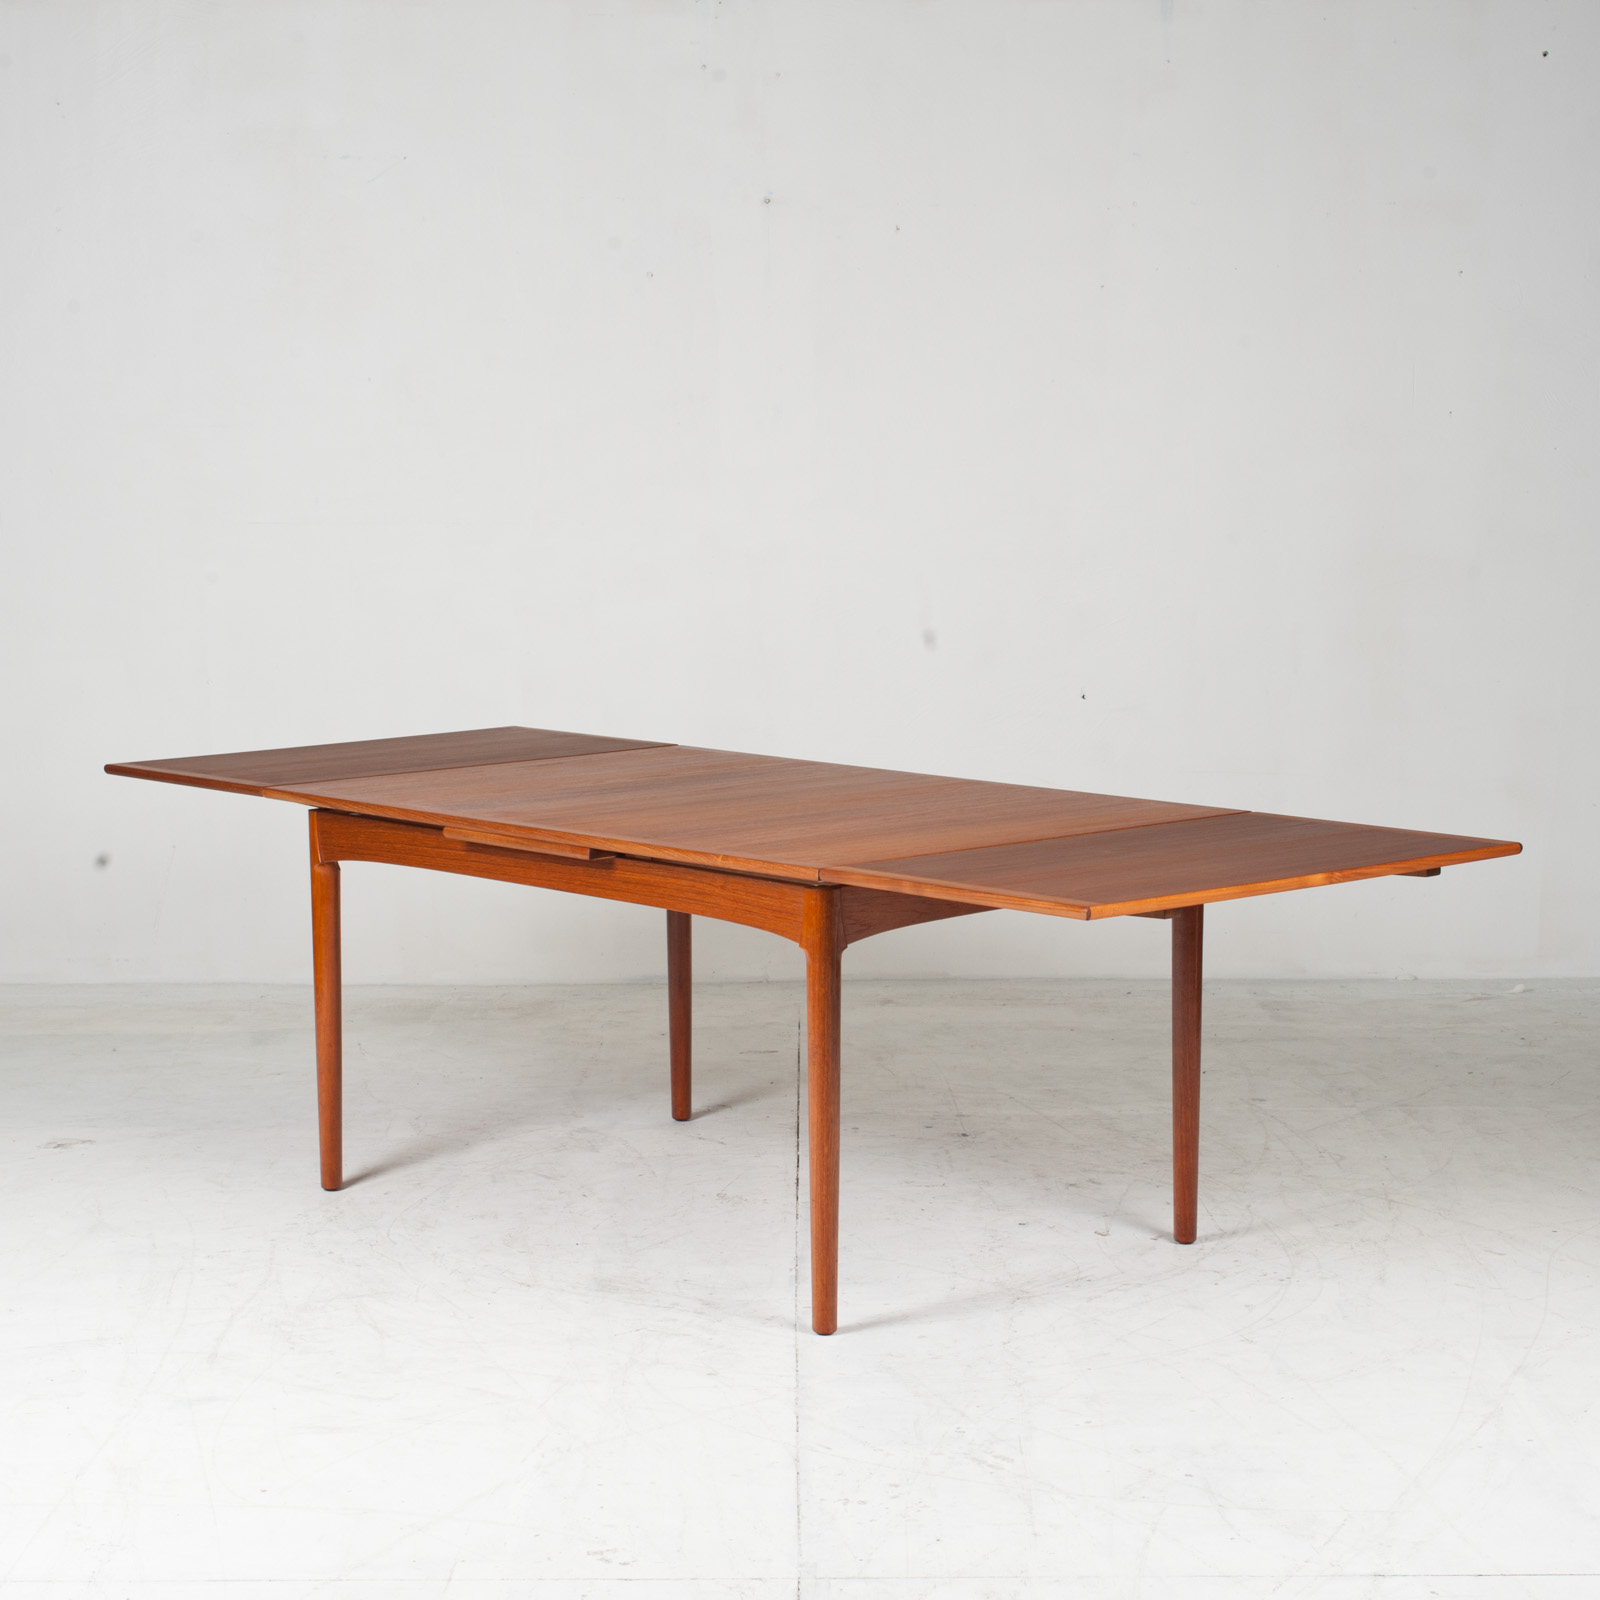 Rectangular Dining Table In Teak With Concealed Extentions 1960s Denmark11